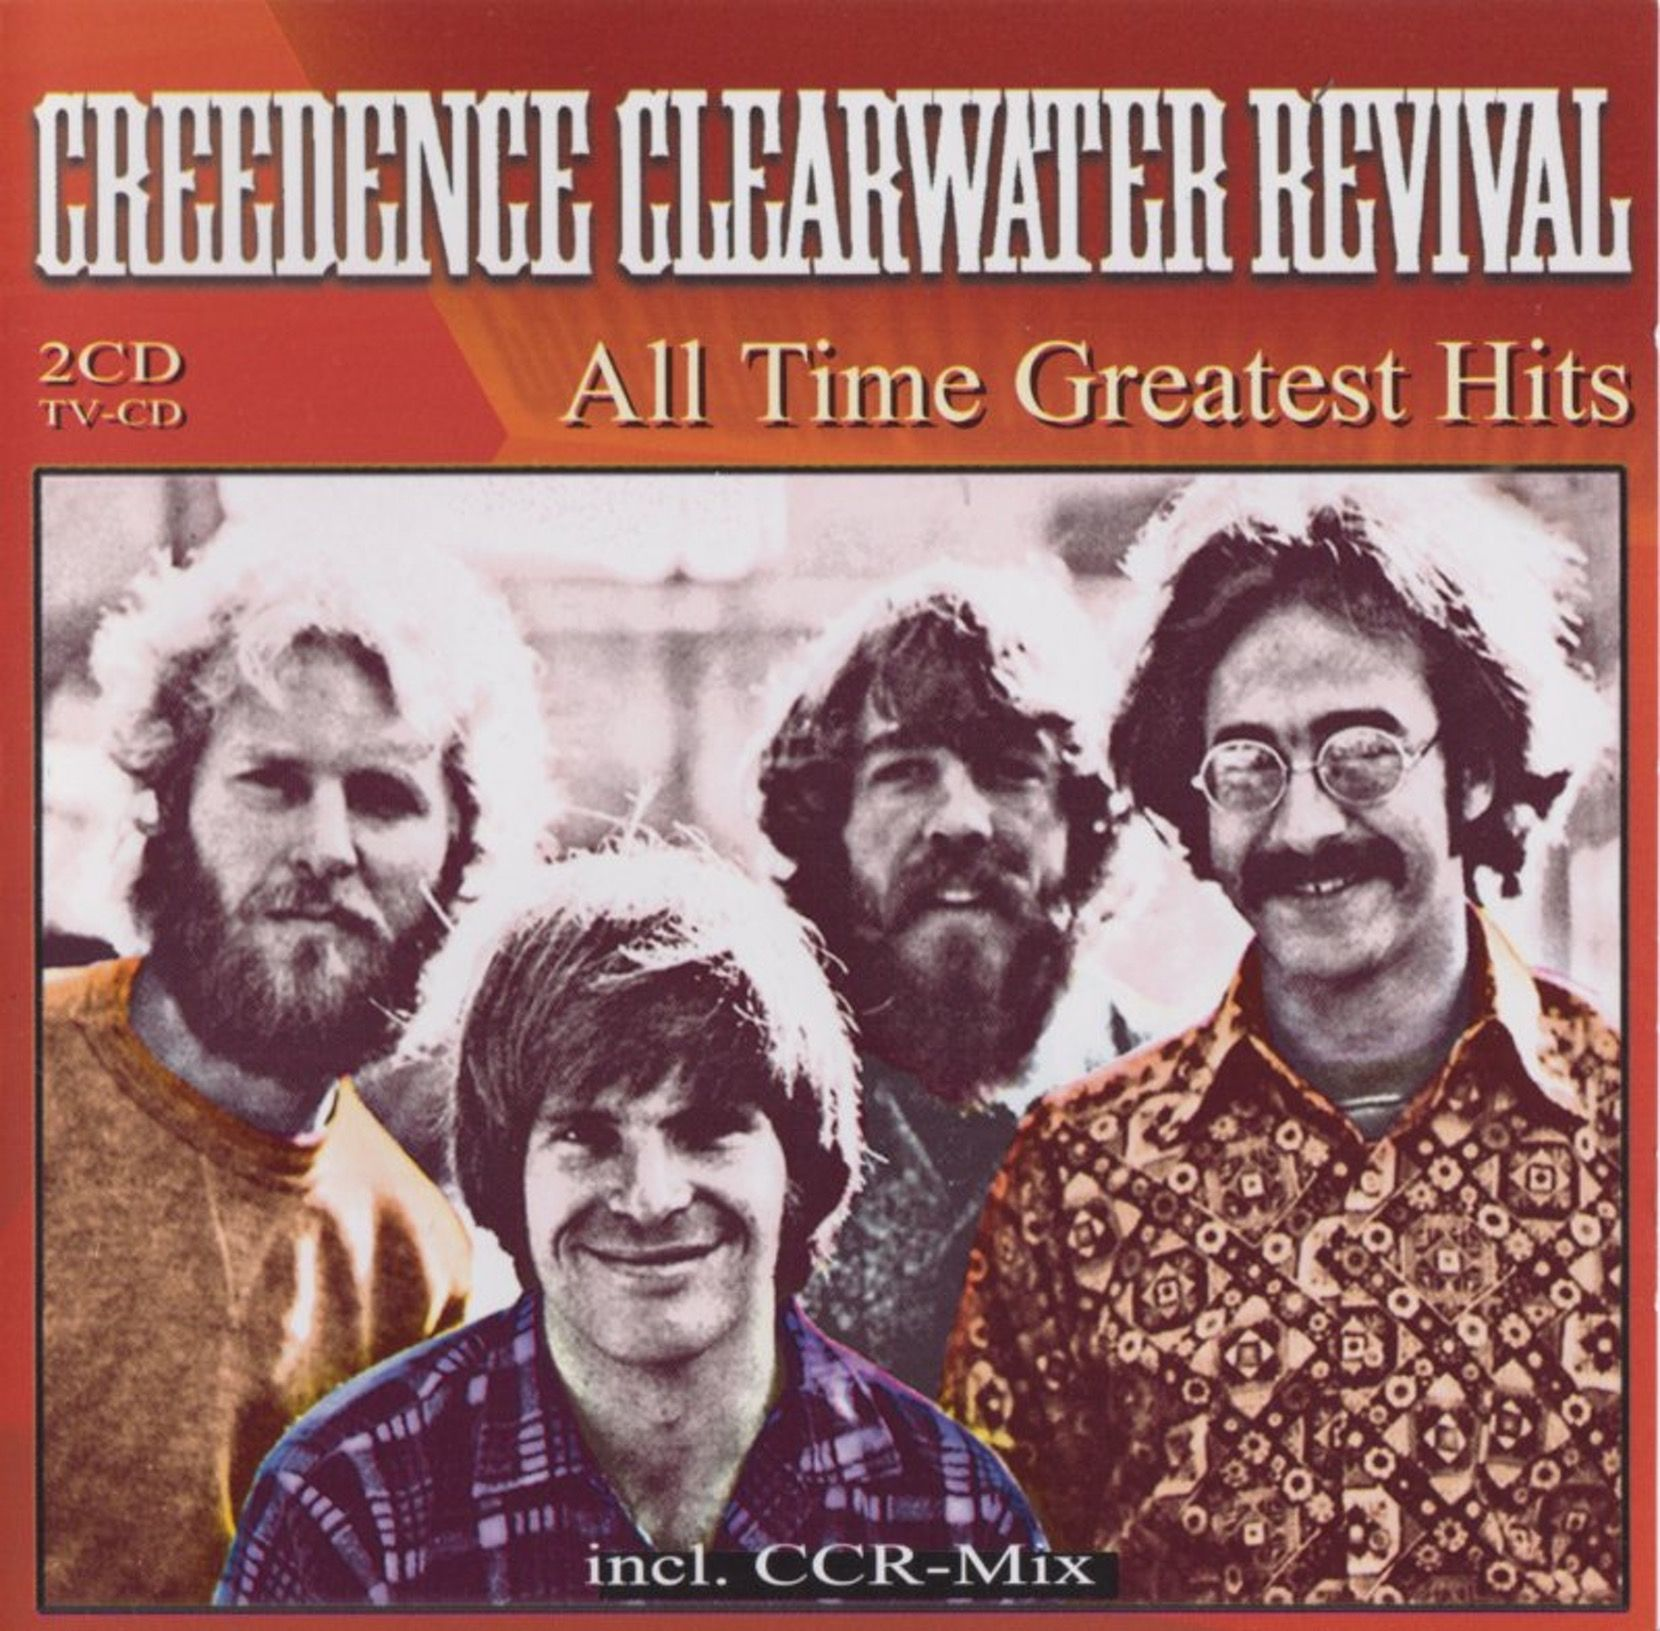 The 10 Best Greatest Hits Albums To Own On Vinyl Creedence Clearwater Revival Clearwater Revival Greatest Hits